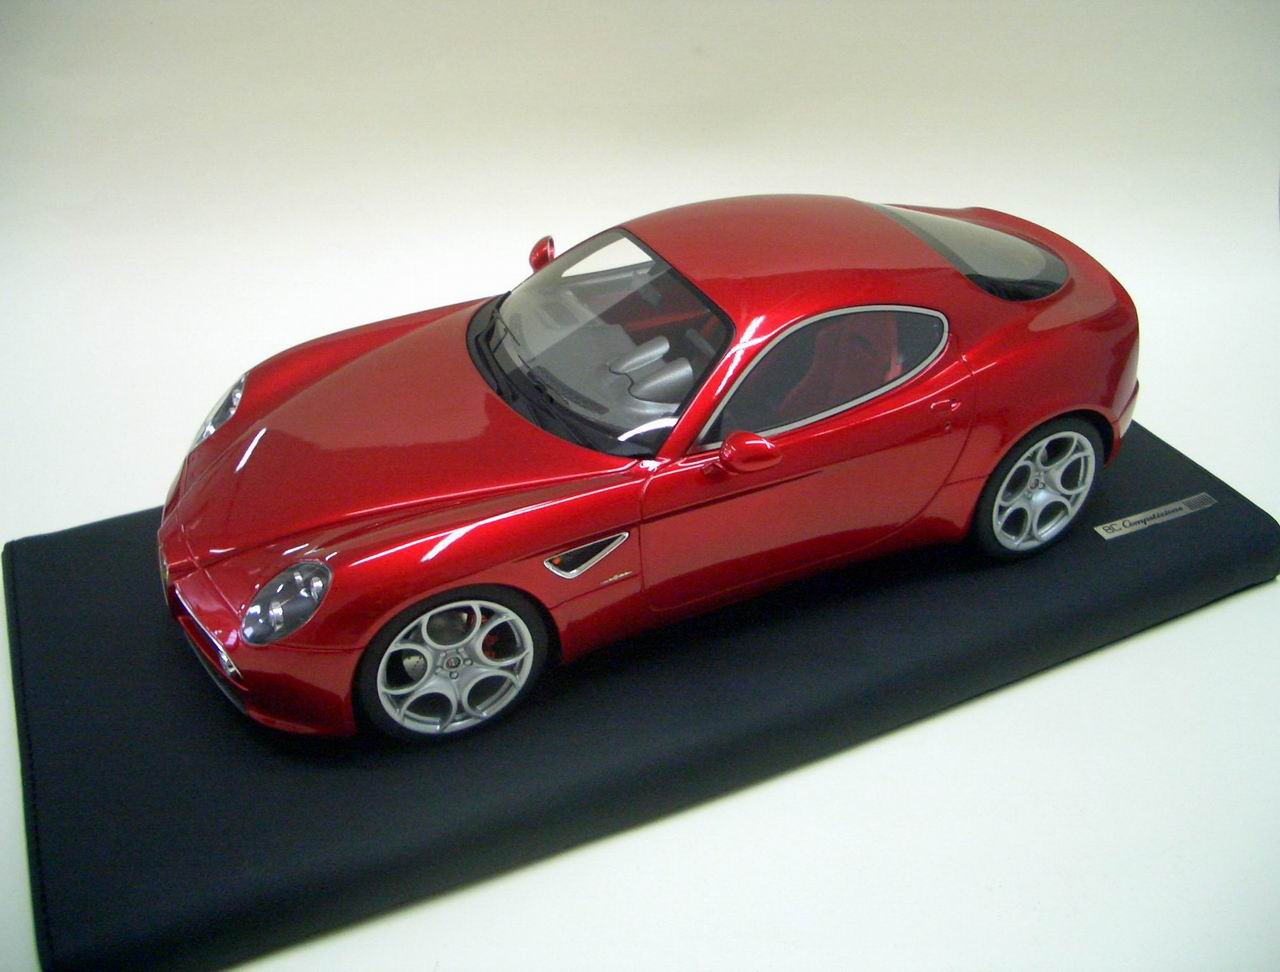 alfa romeo 8c competizione 1:18 | mr collection models